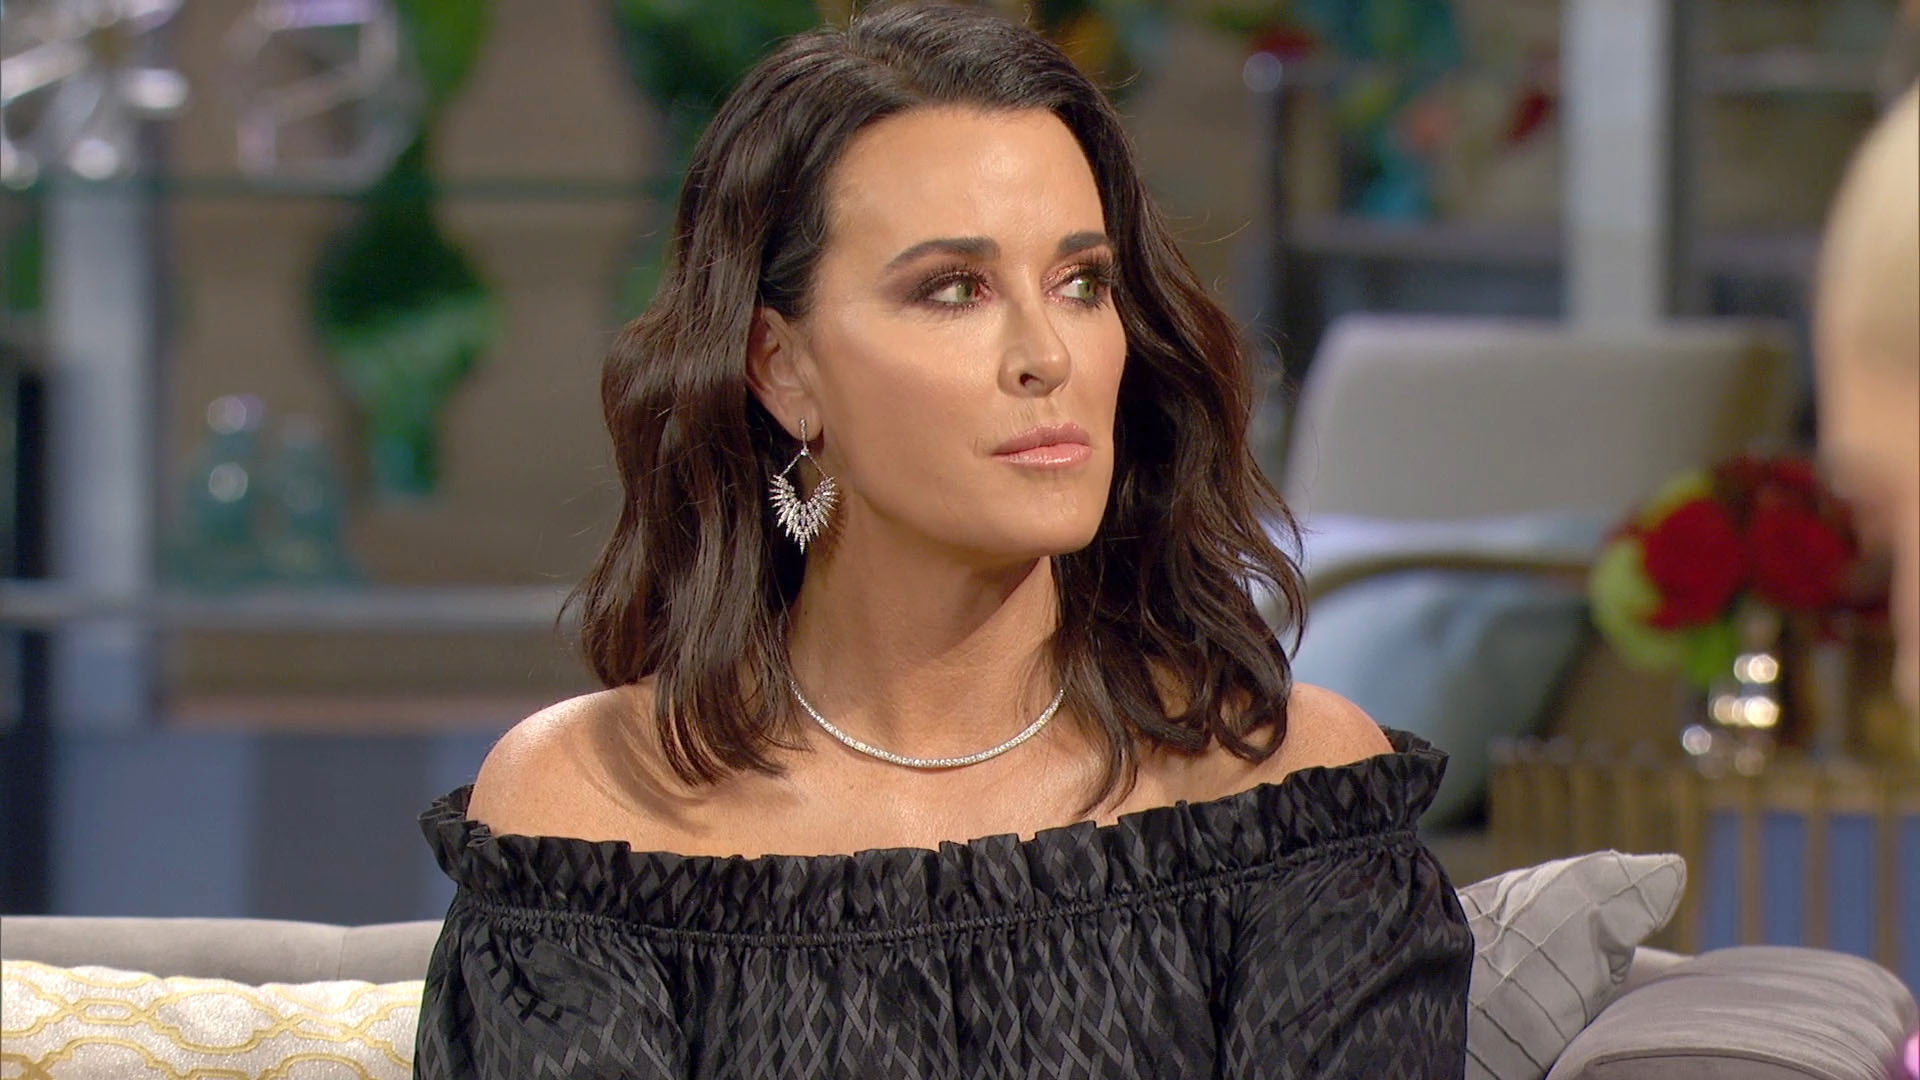 1920x1080 - Kyle Richards Wallpapers 28